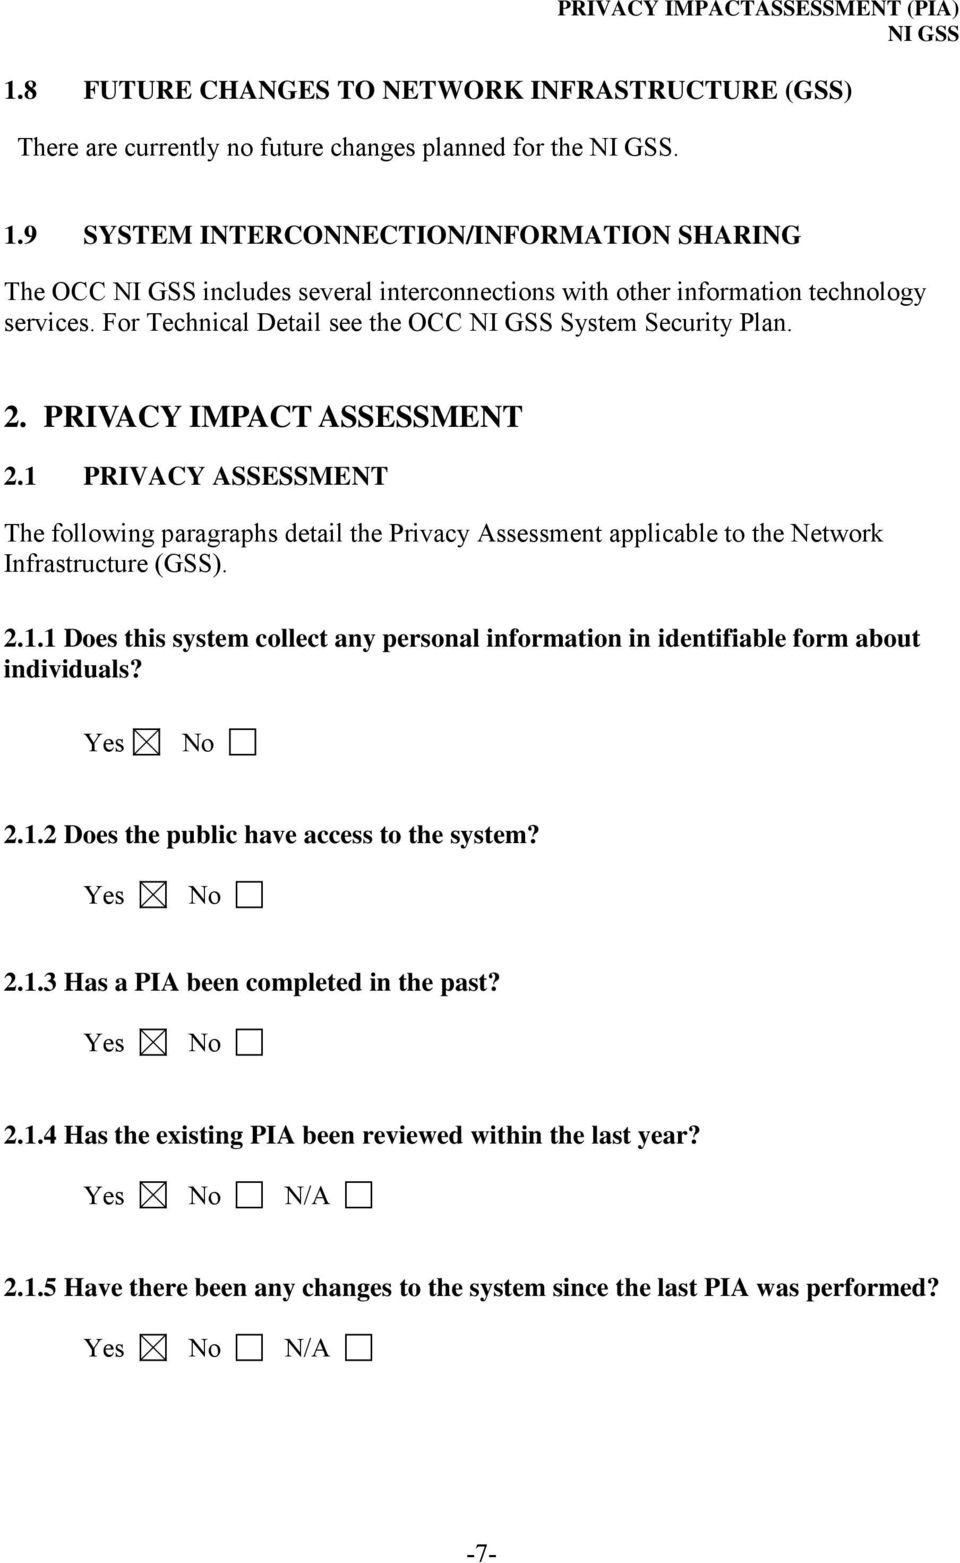 PRIVACY IMPACT ASSESSMENT 2.1 PRIVACY ASSESSMENT The following paragraphs detail the Privacy Assessment applicable to the Network Infrastructure (GSS). 2.1.1 Does this system collect any personal information in identifiable form about individuals?